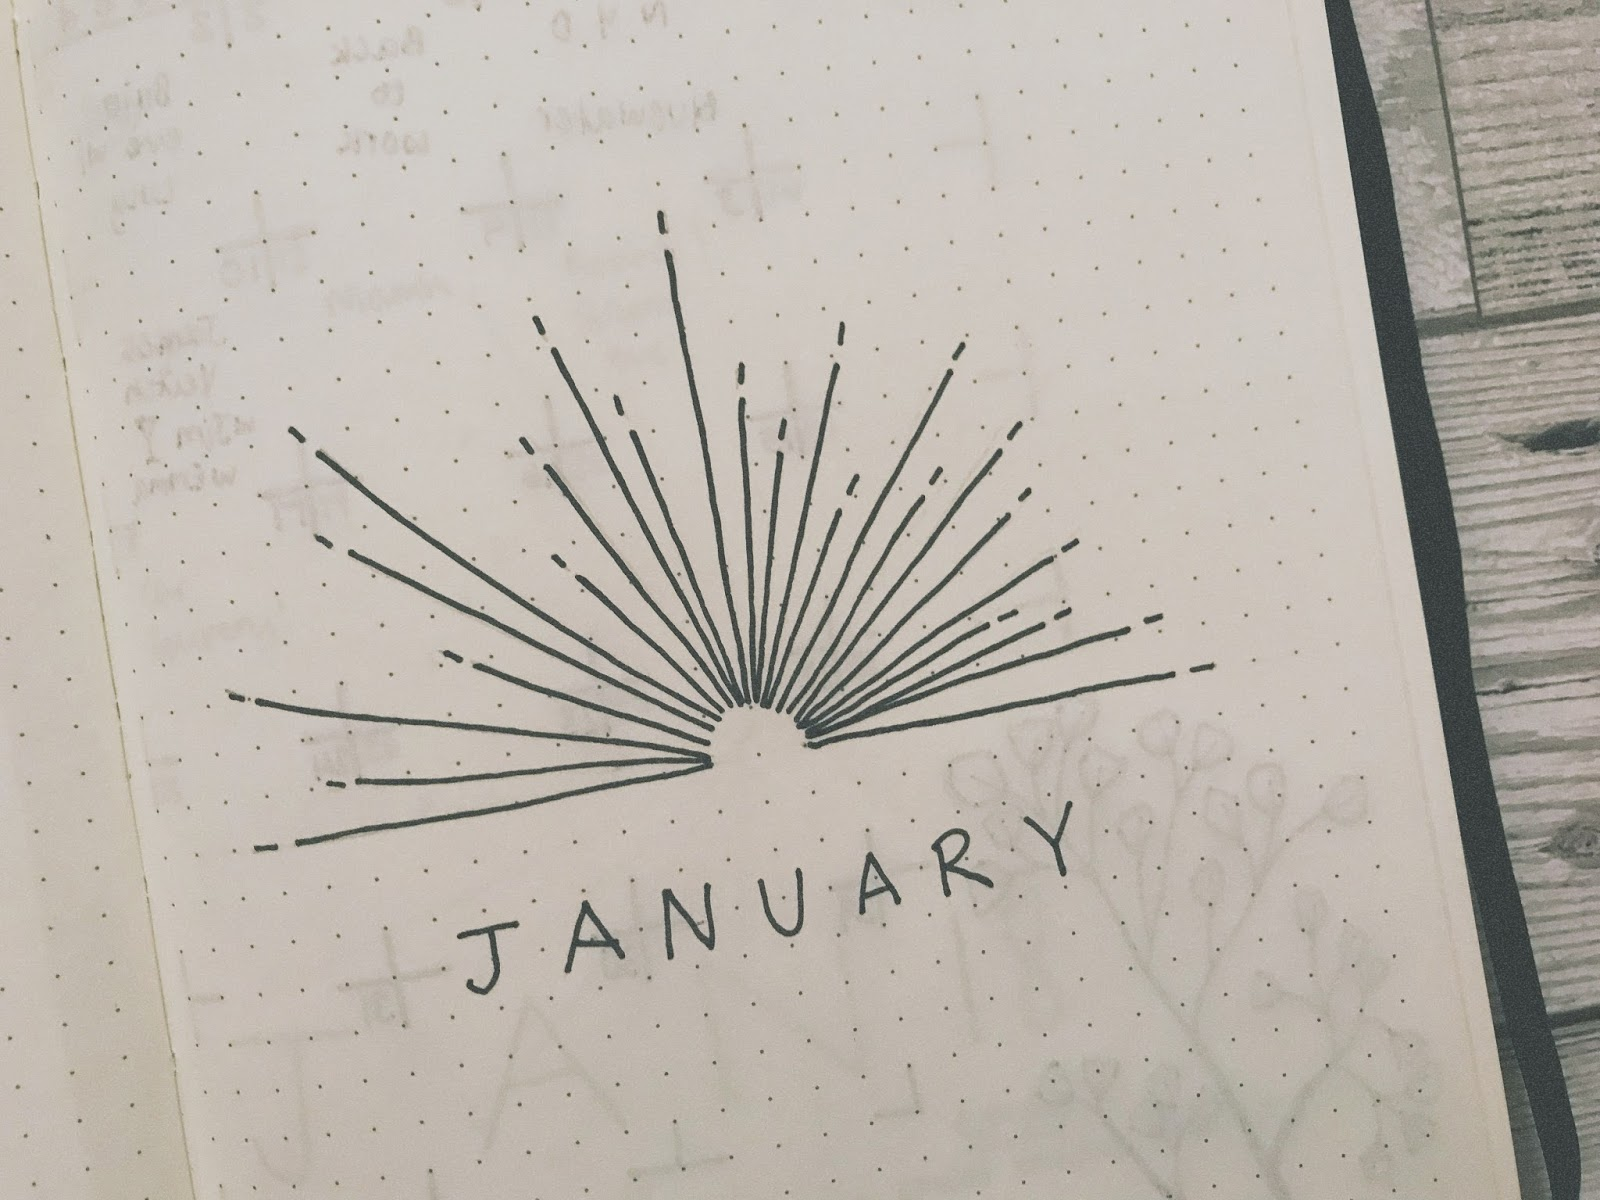 A cover page for January 2018